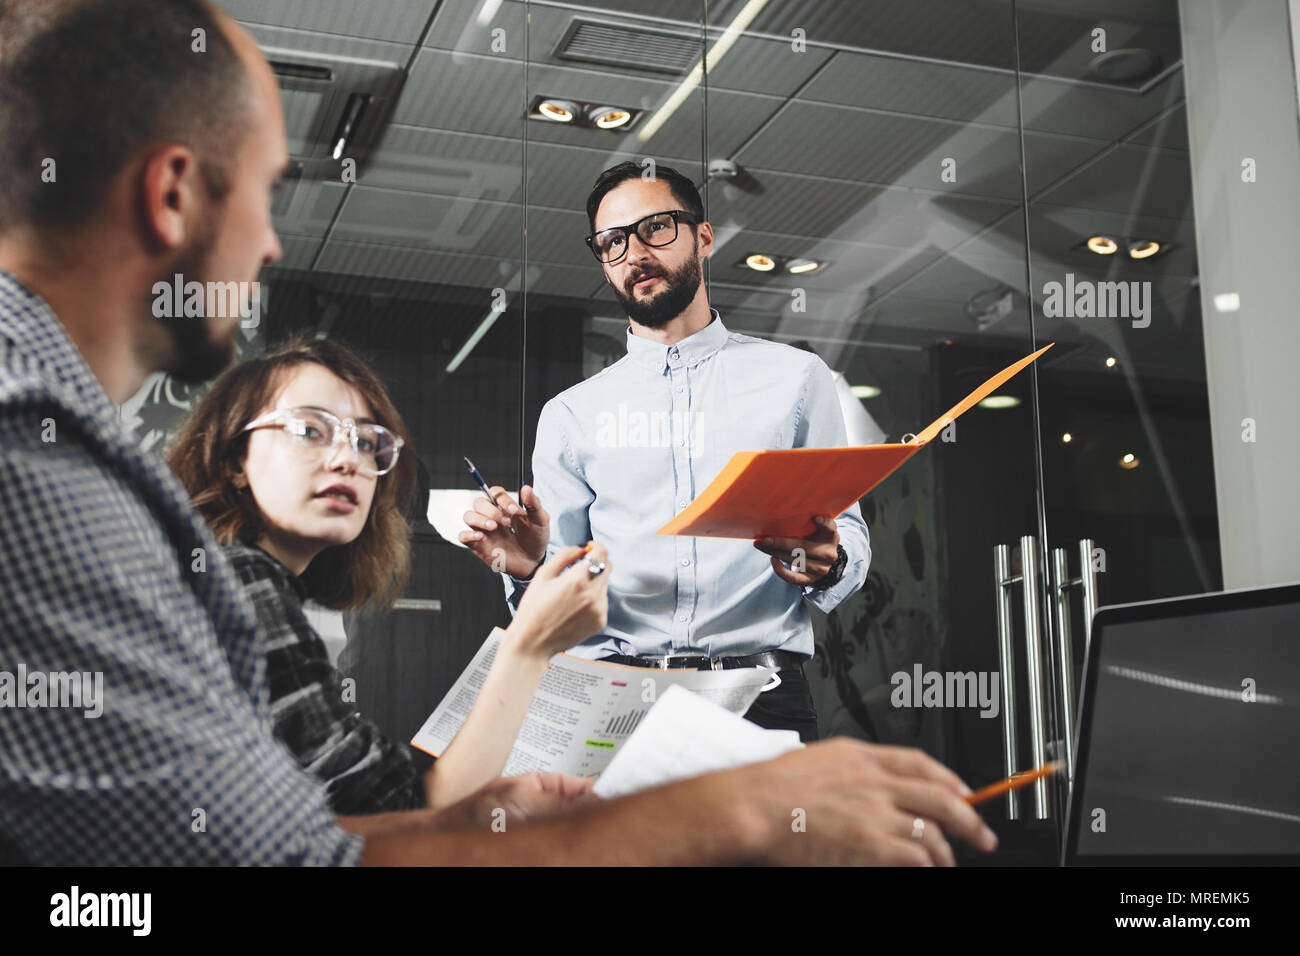 Account manager works with clients in loft office. Training staff. Teamwork and brainstorming - Stock Image